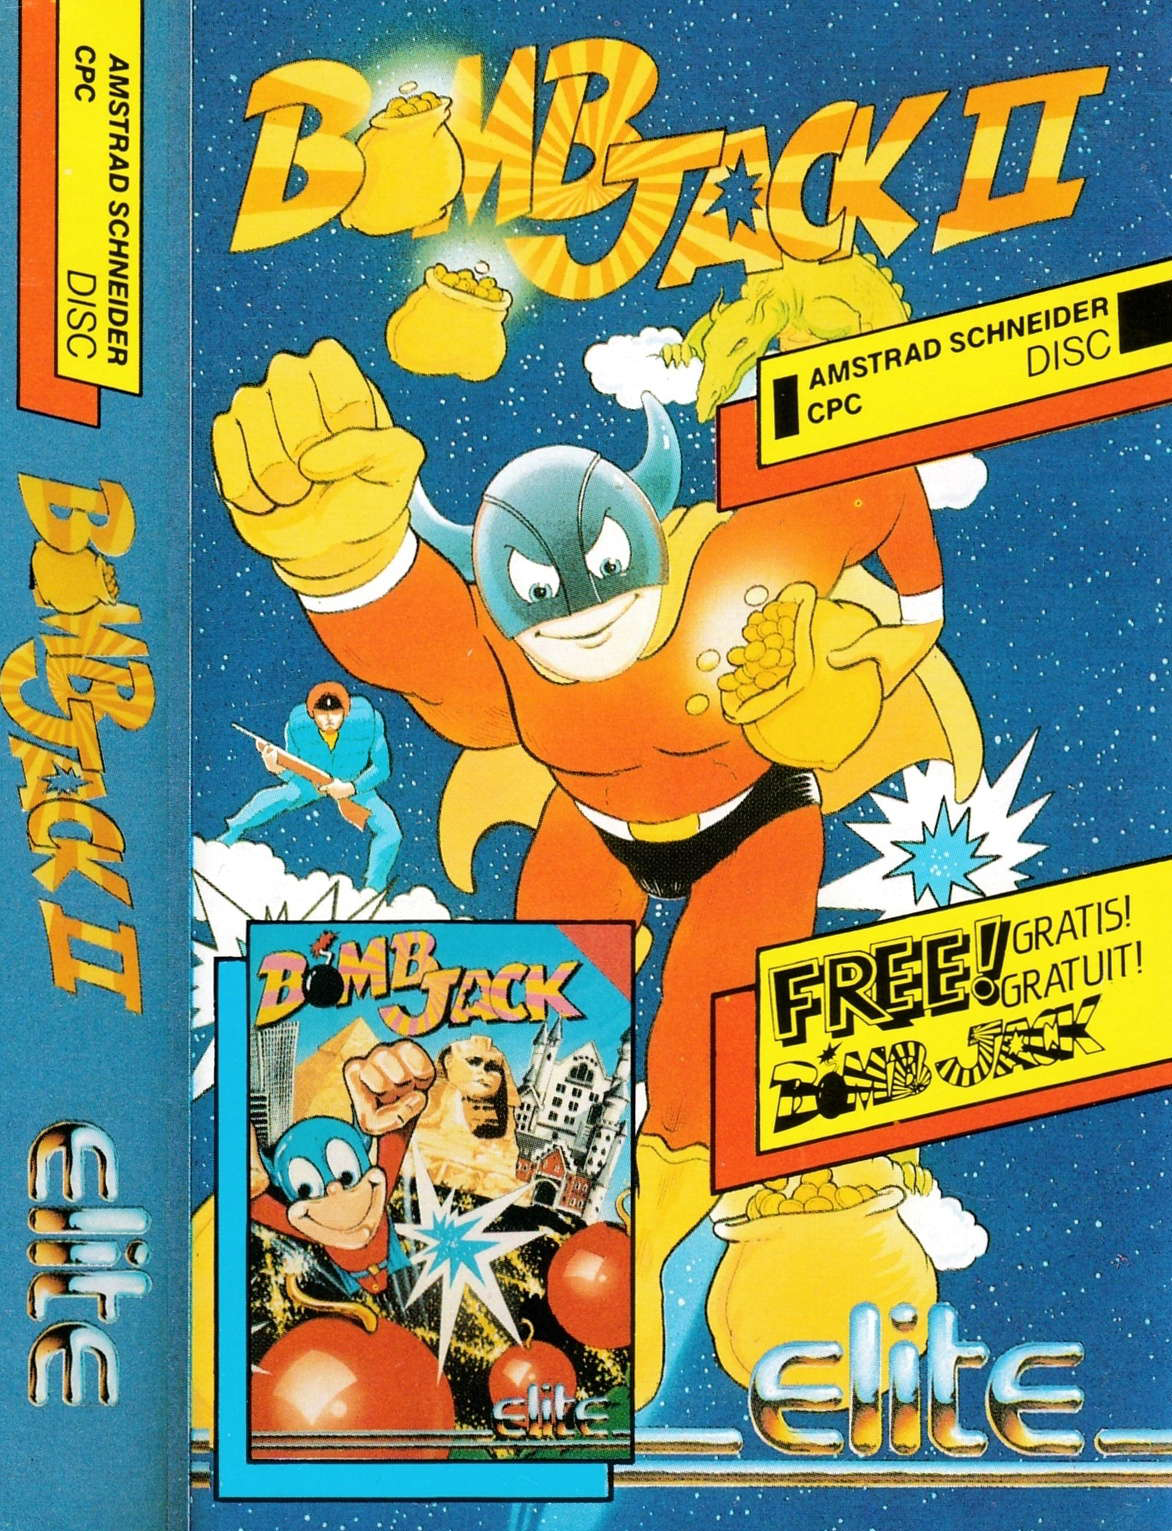 cover of the Amstrad CPC game Bomb Jack II  by GameBase CPC